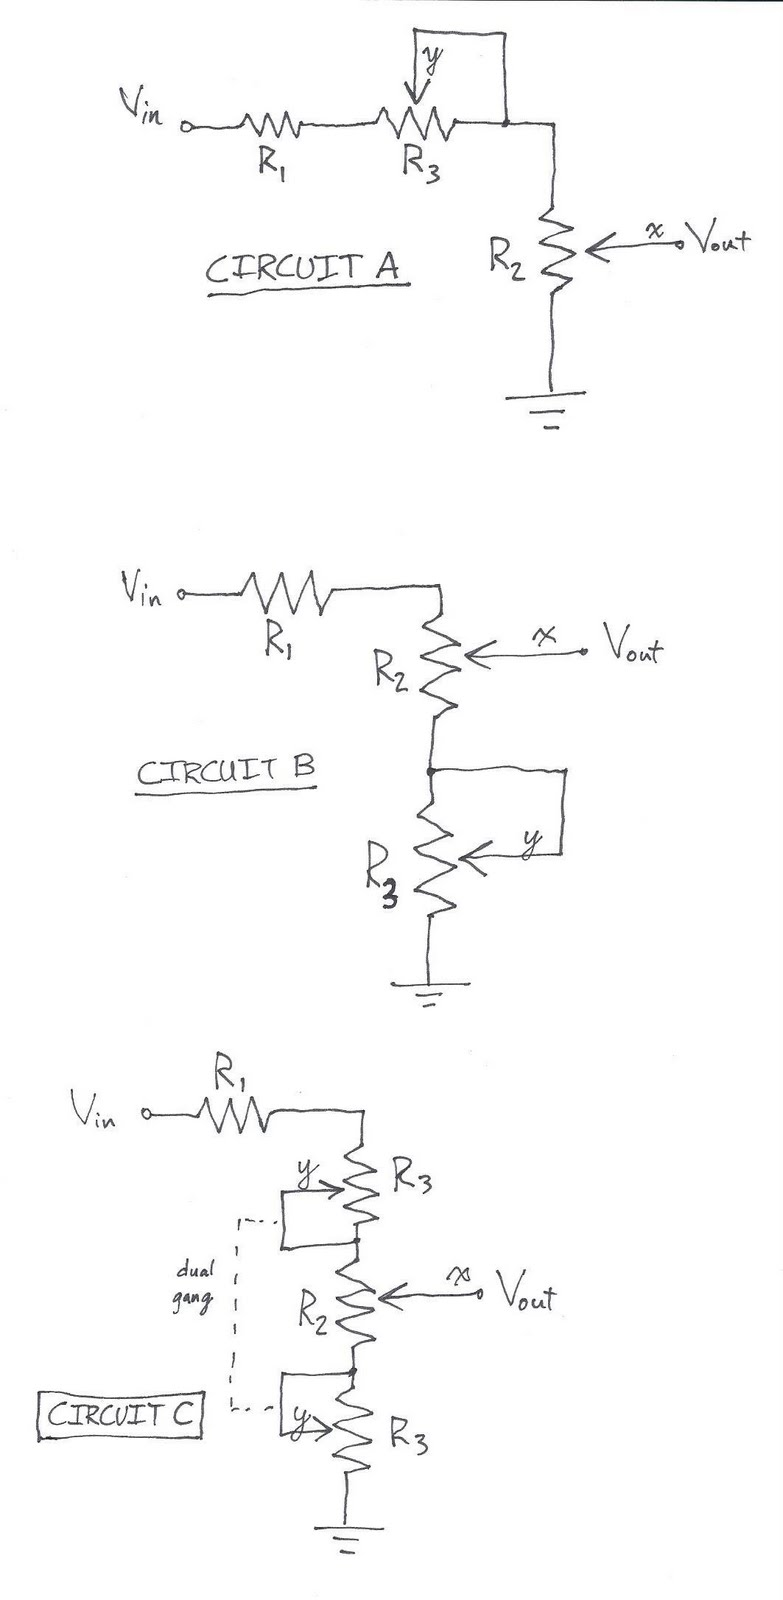 A Place For Bandits Voltage Division With Coarse And Fine Adjust Divider Circuit